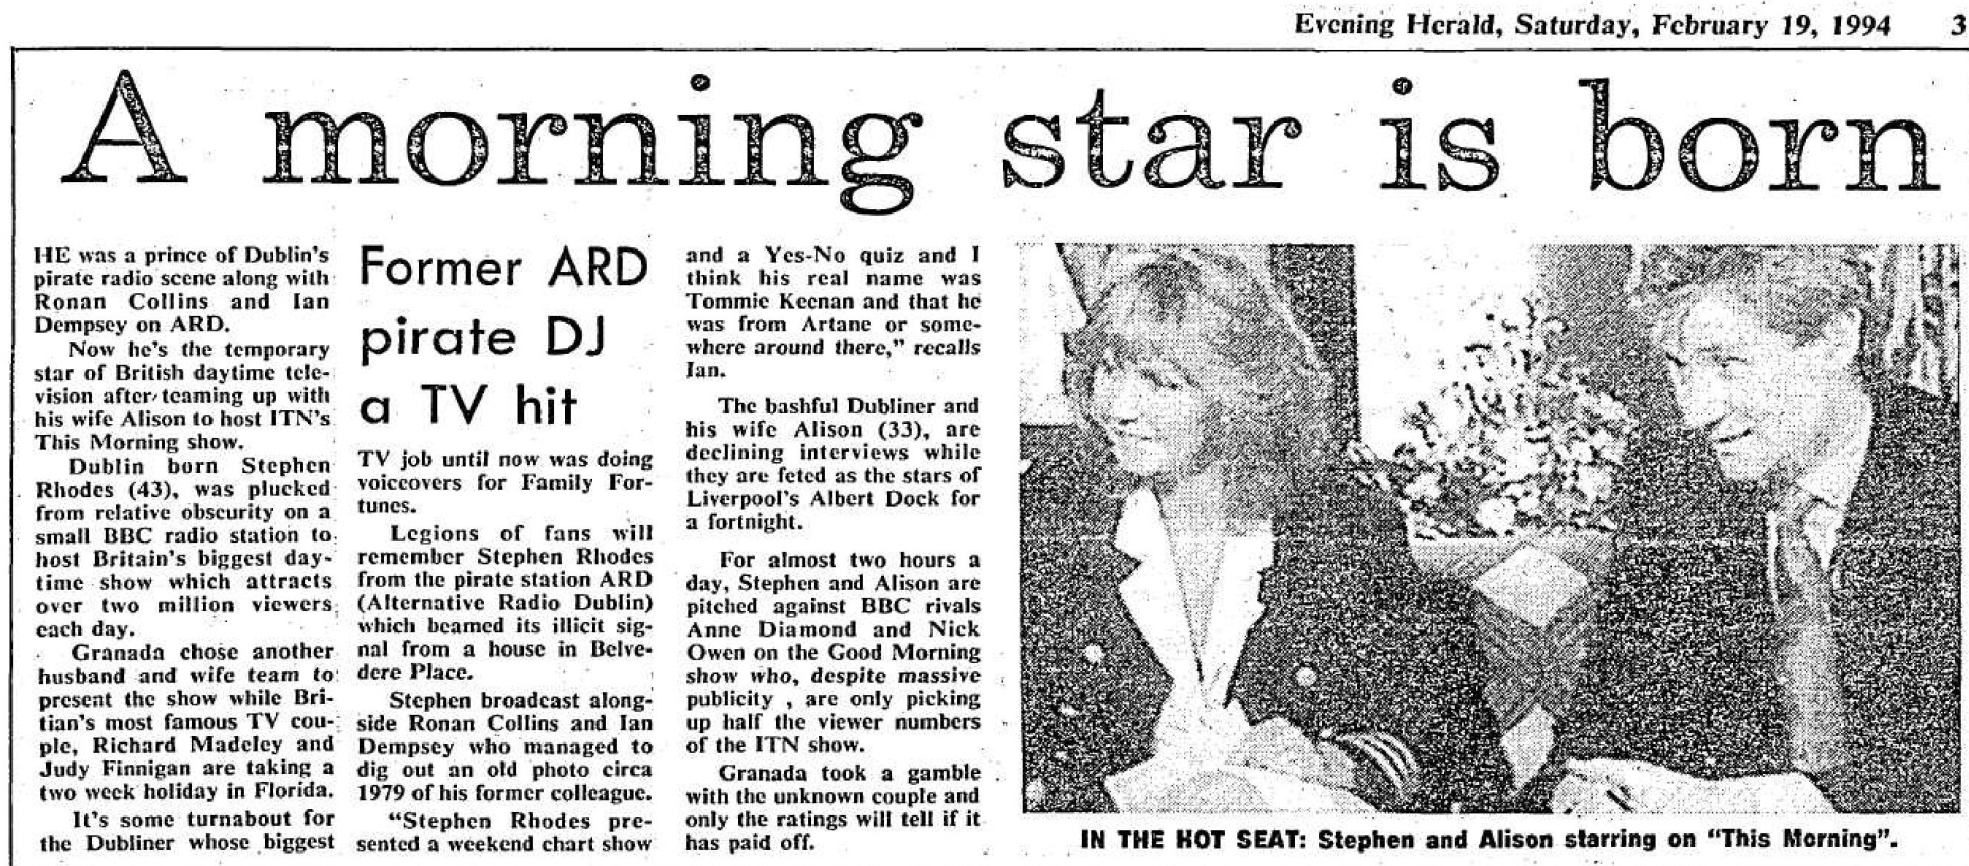 A morning star is born was a headline from The Evening Herald dated February 19th 1994